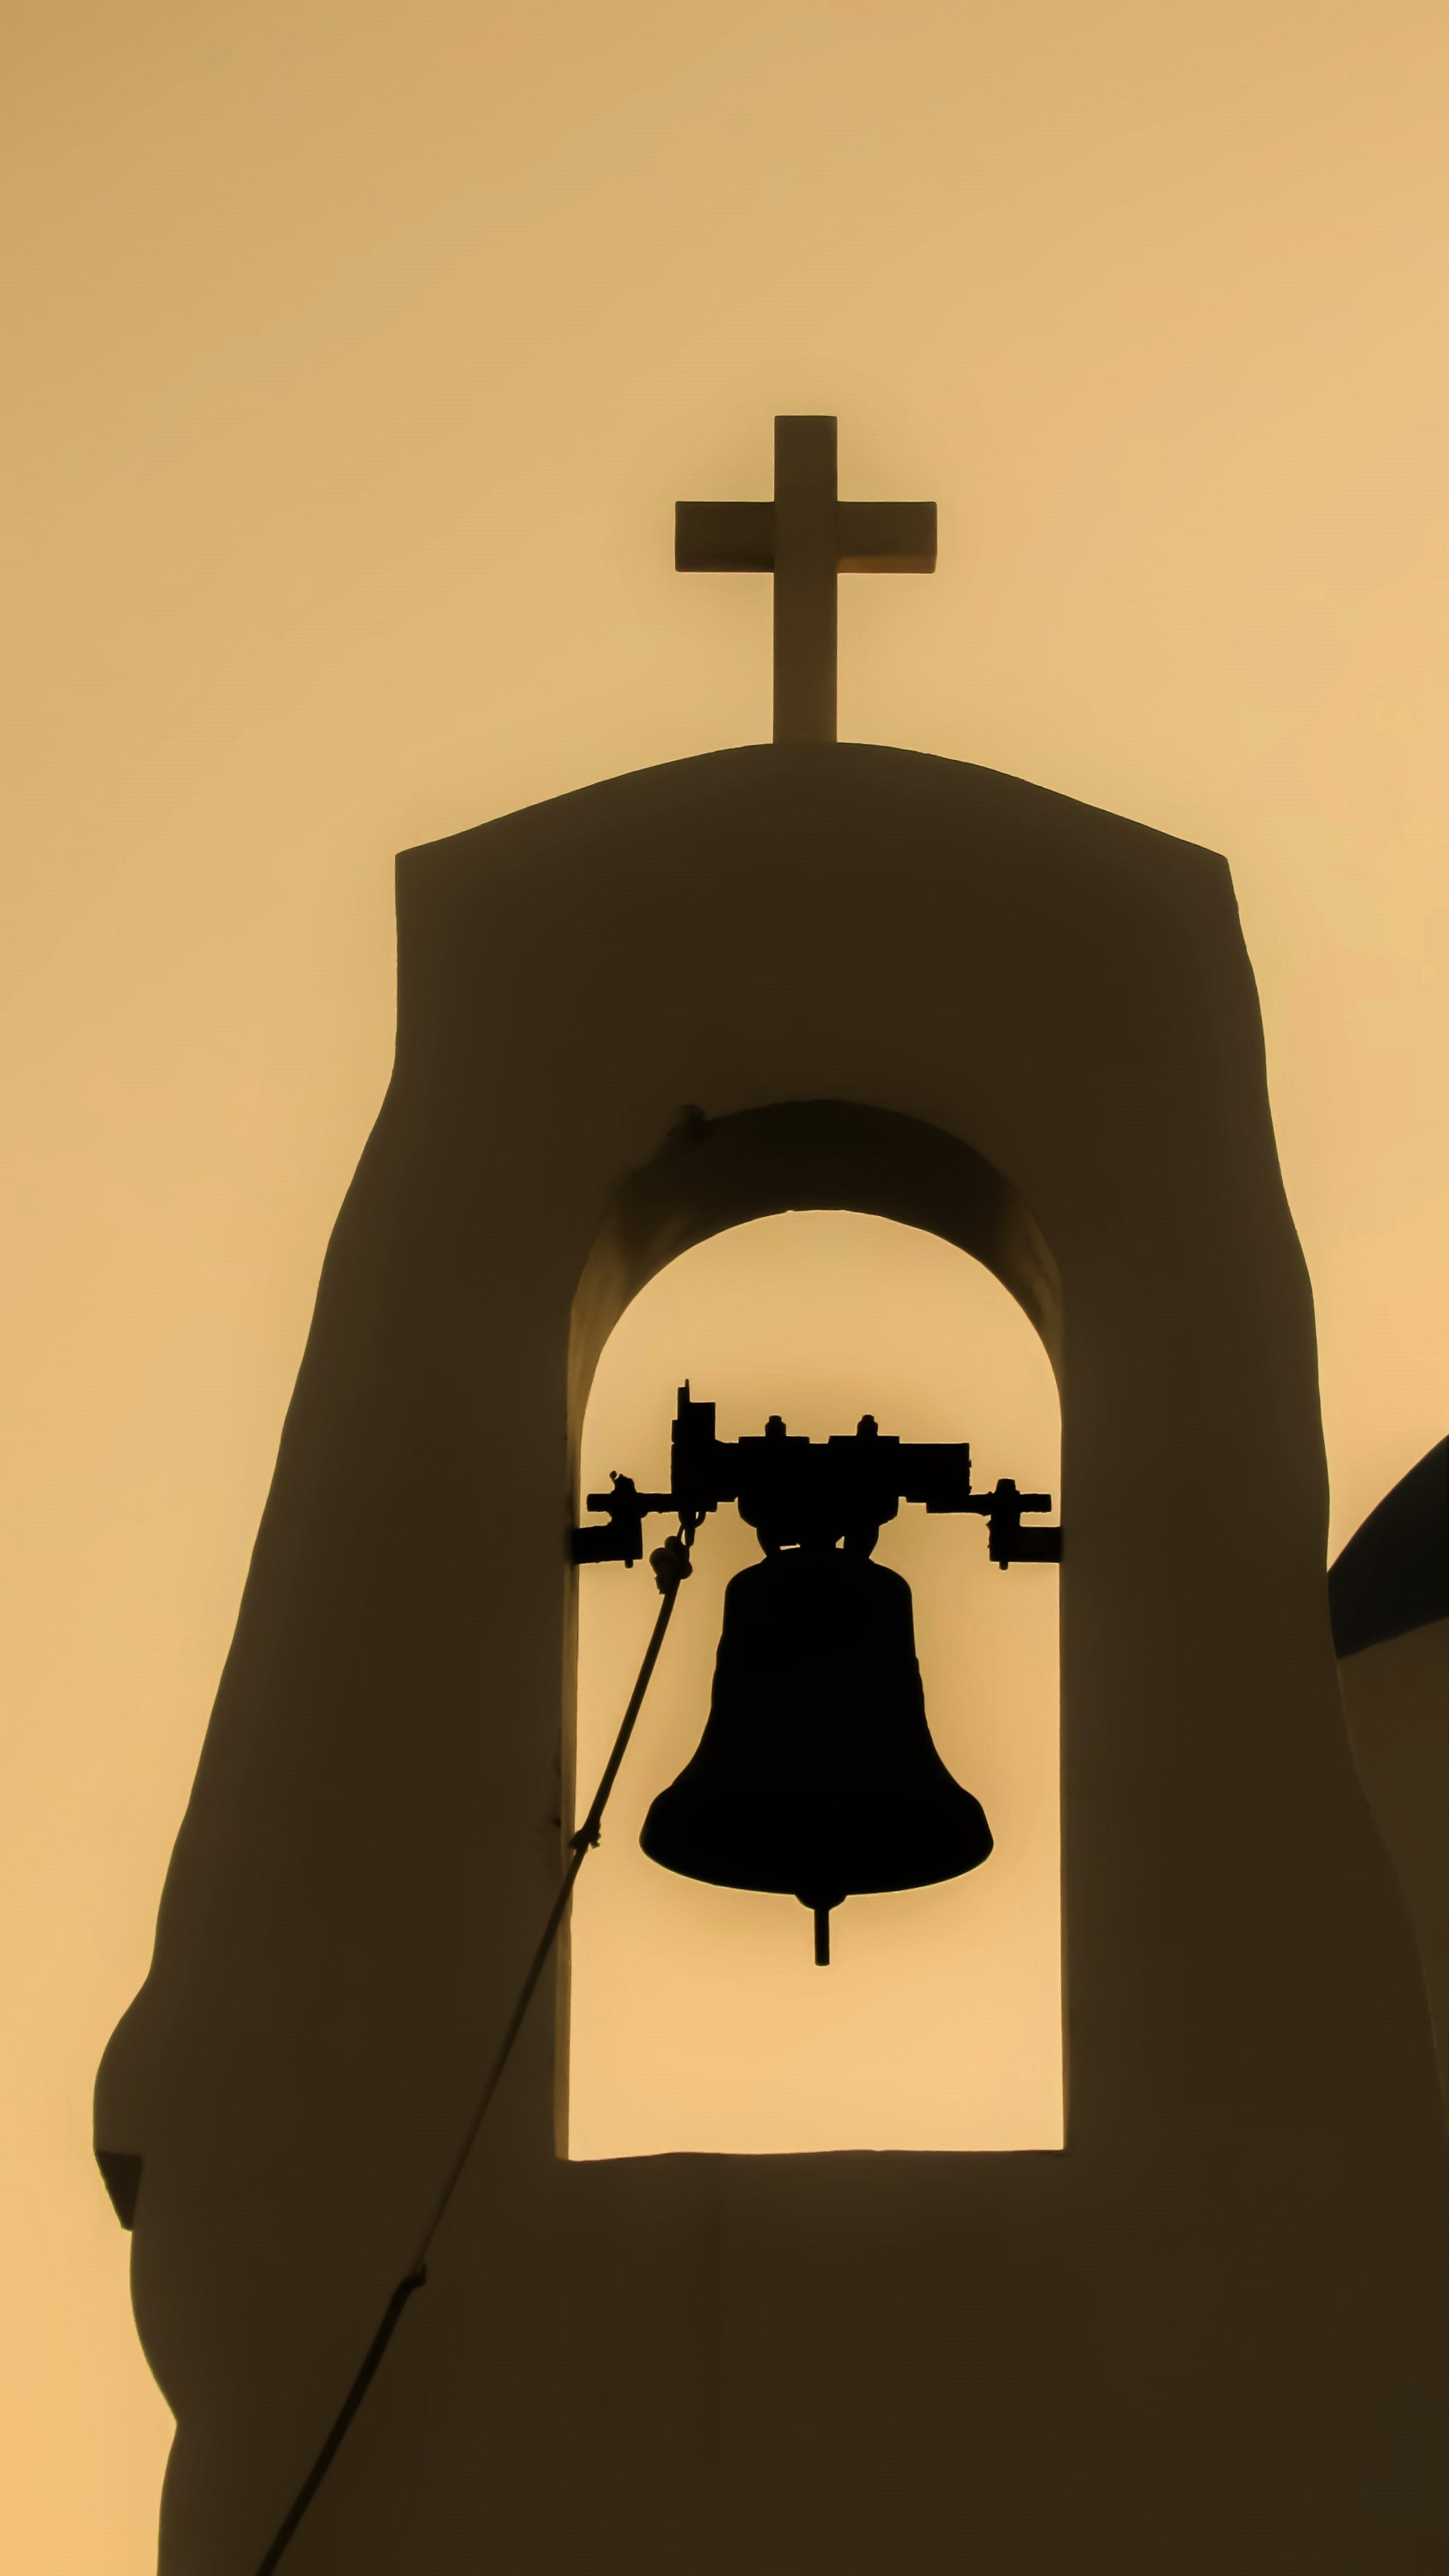 architecture, belfry, bell